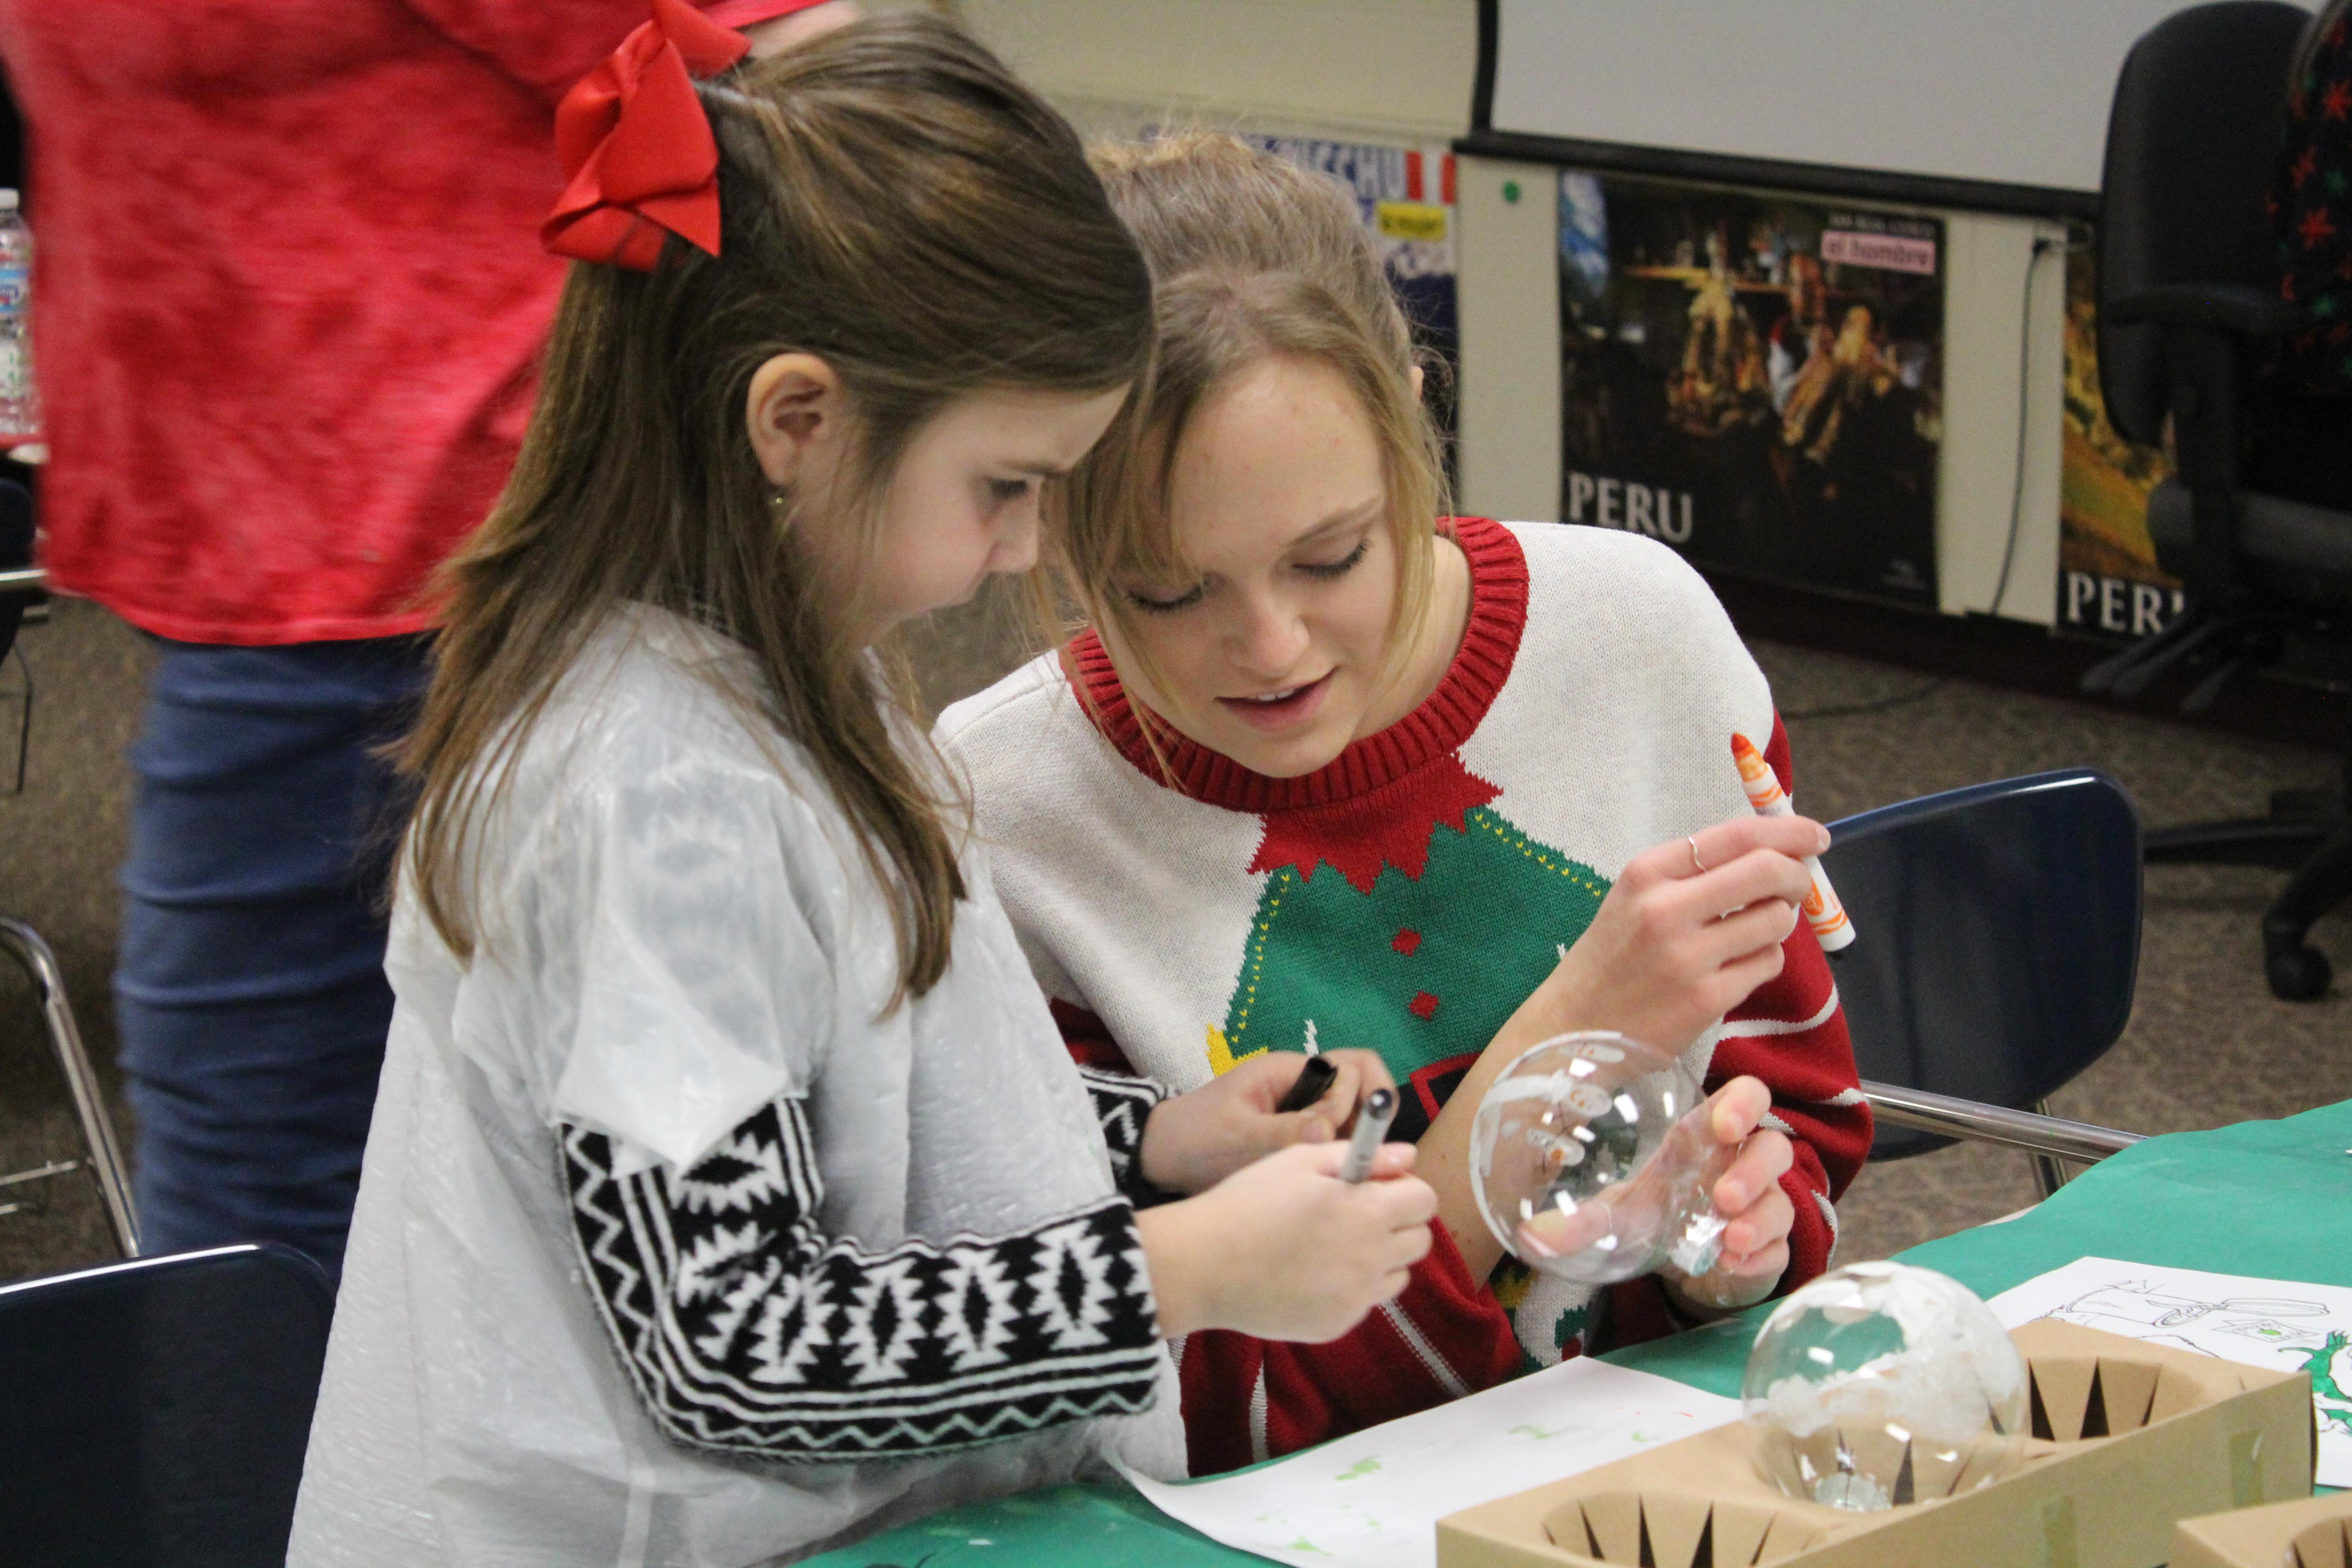 Teen girl wearing Christmas sweater helping a young child cut decorate a Christmas bulb